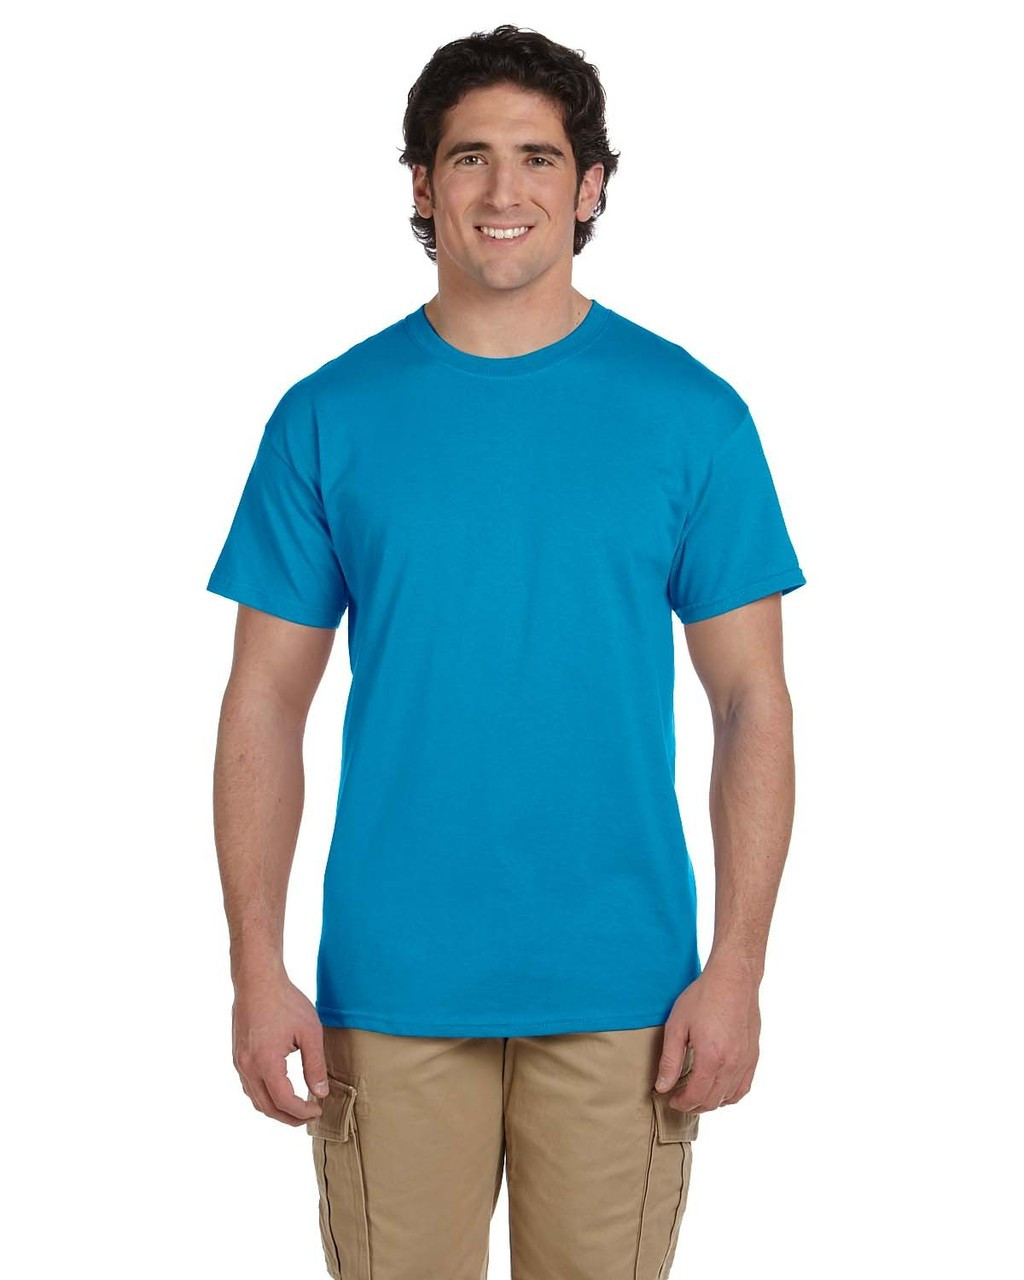 Pacific Blue - 3931 Fruit of the Loom 100% Heavy Cotton HD® T-Shirt | Blankclothing.ca